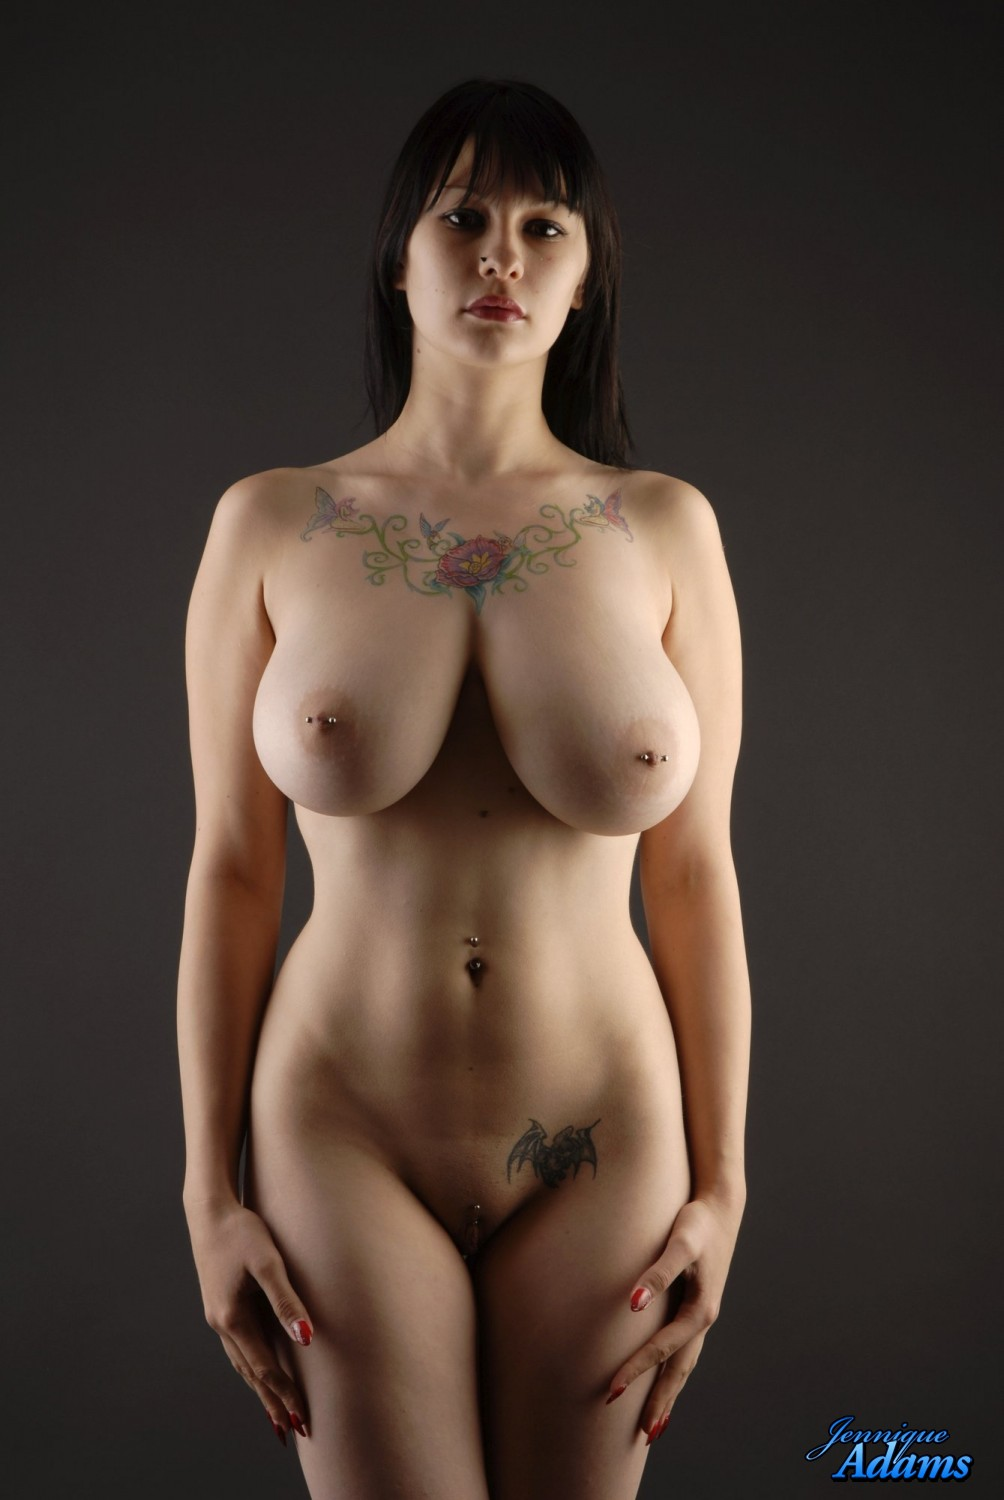 Apologise, but, perfect curvy woman body nude